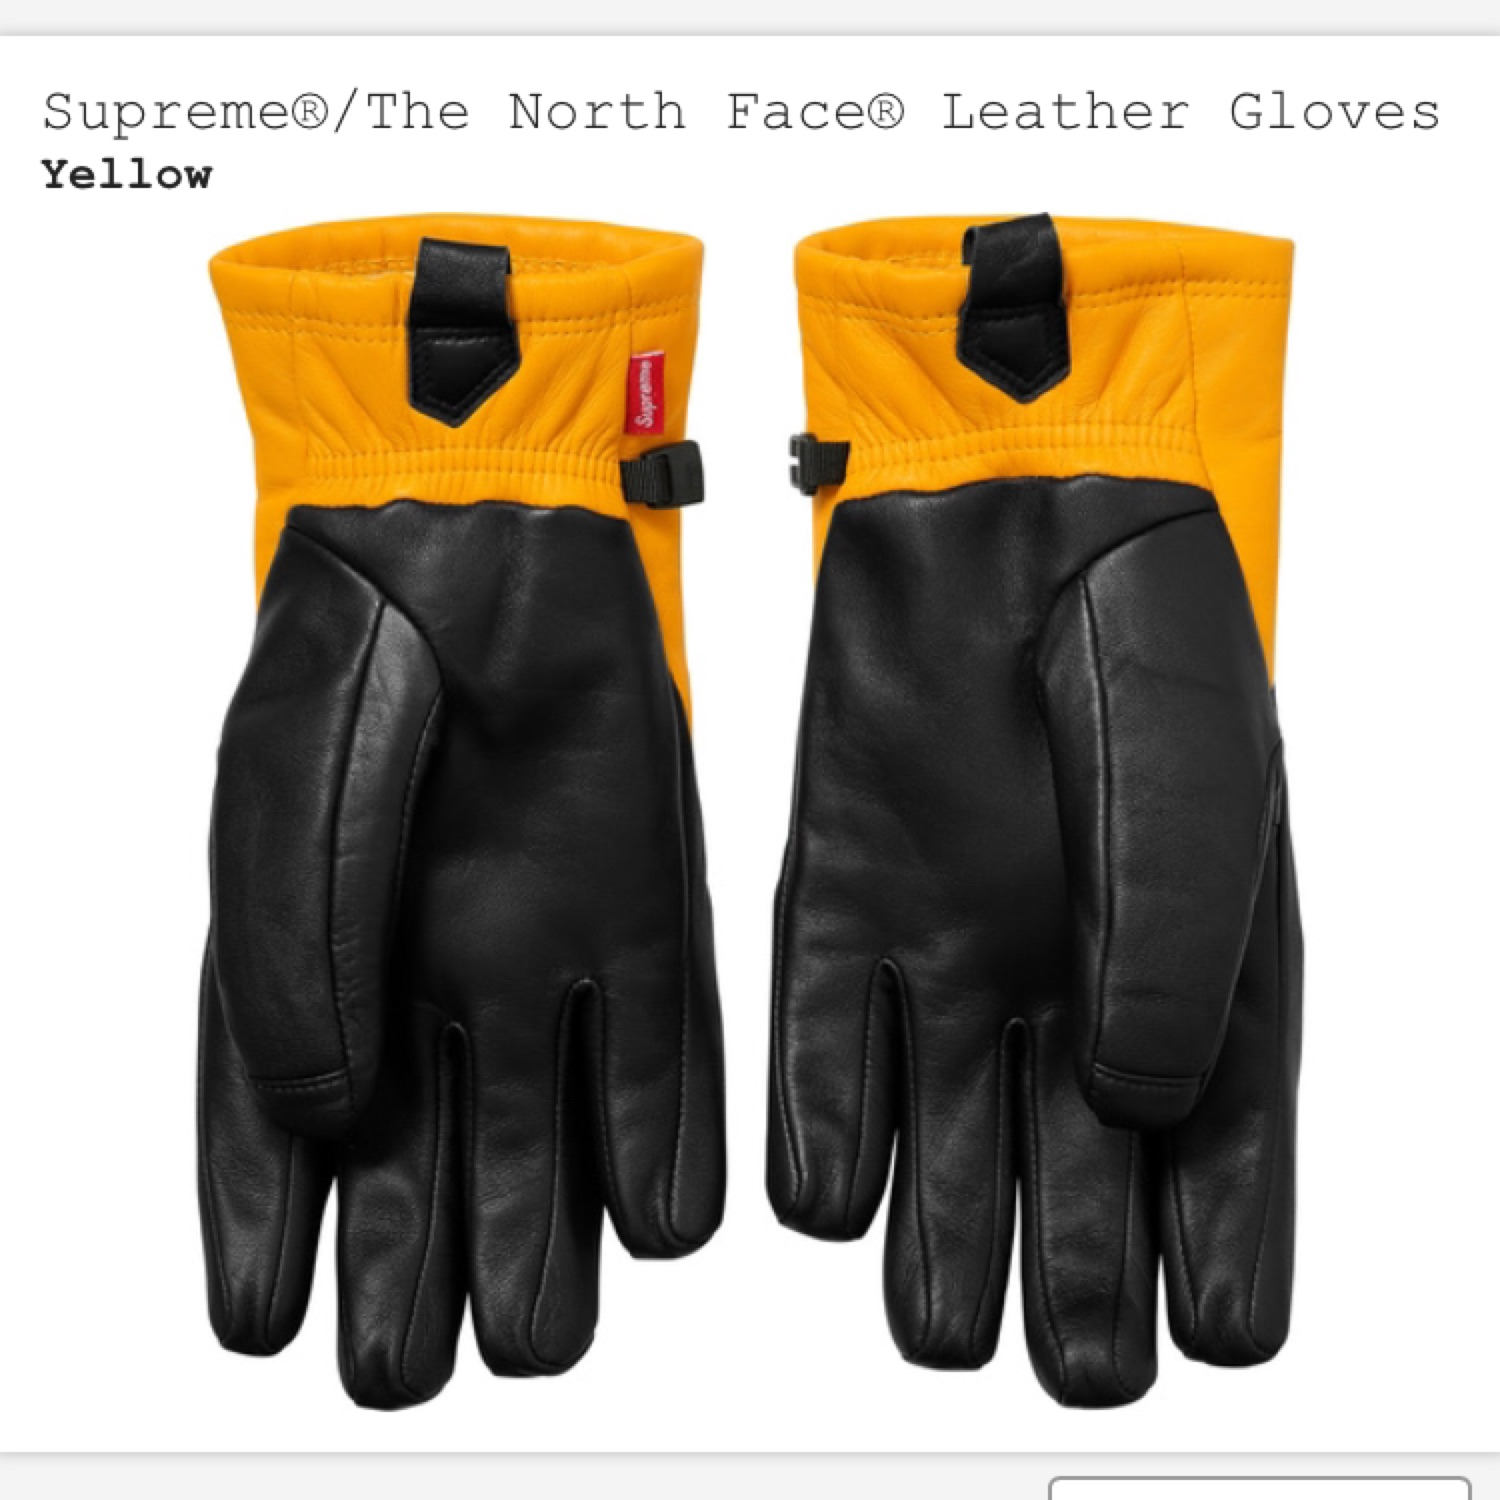 55a82324d Supreme X The North Face Leather Gloves